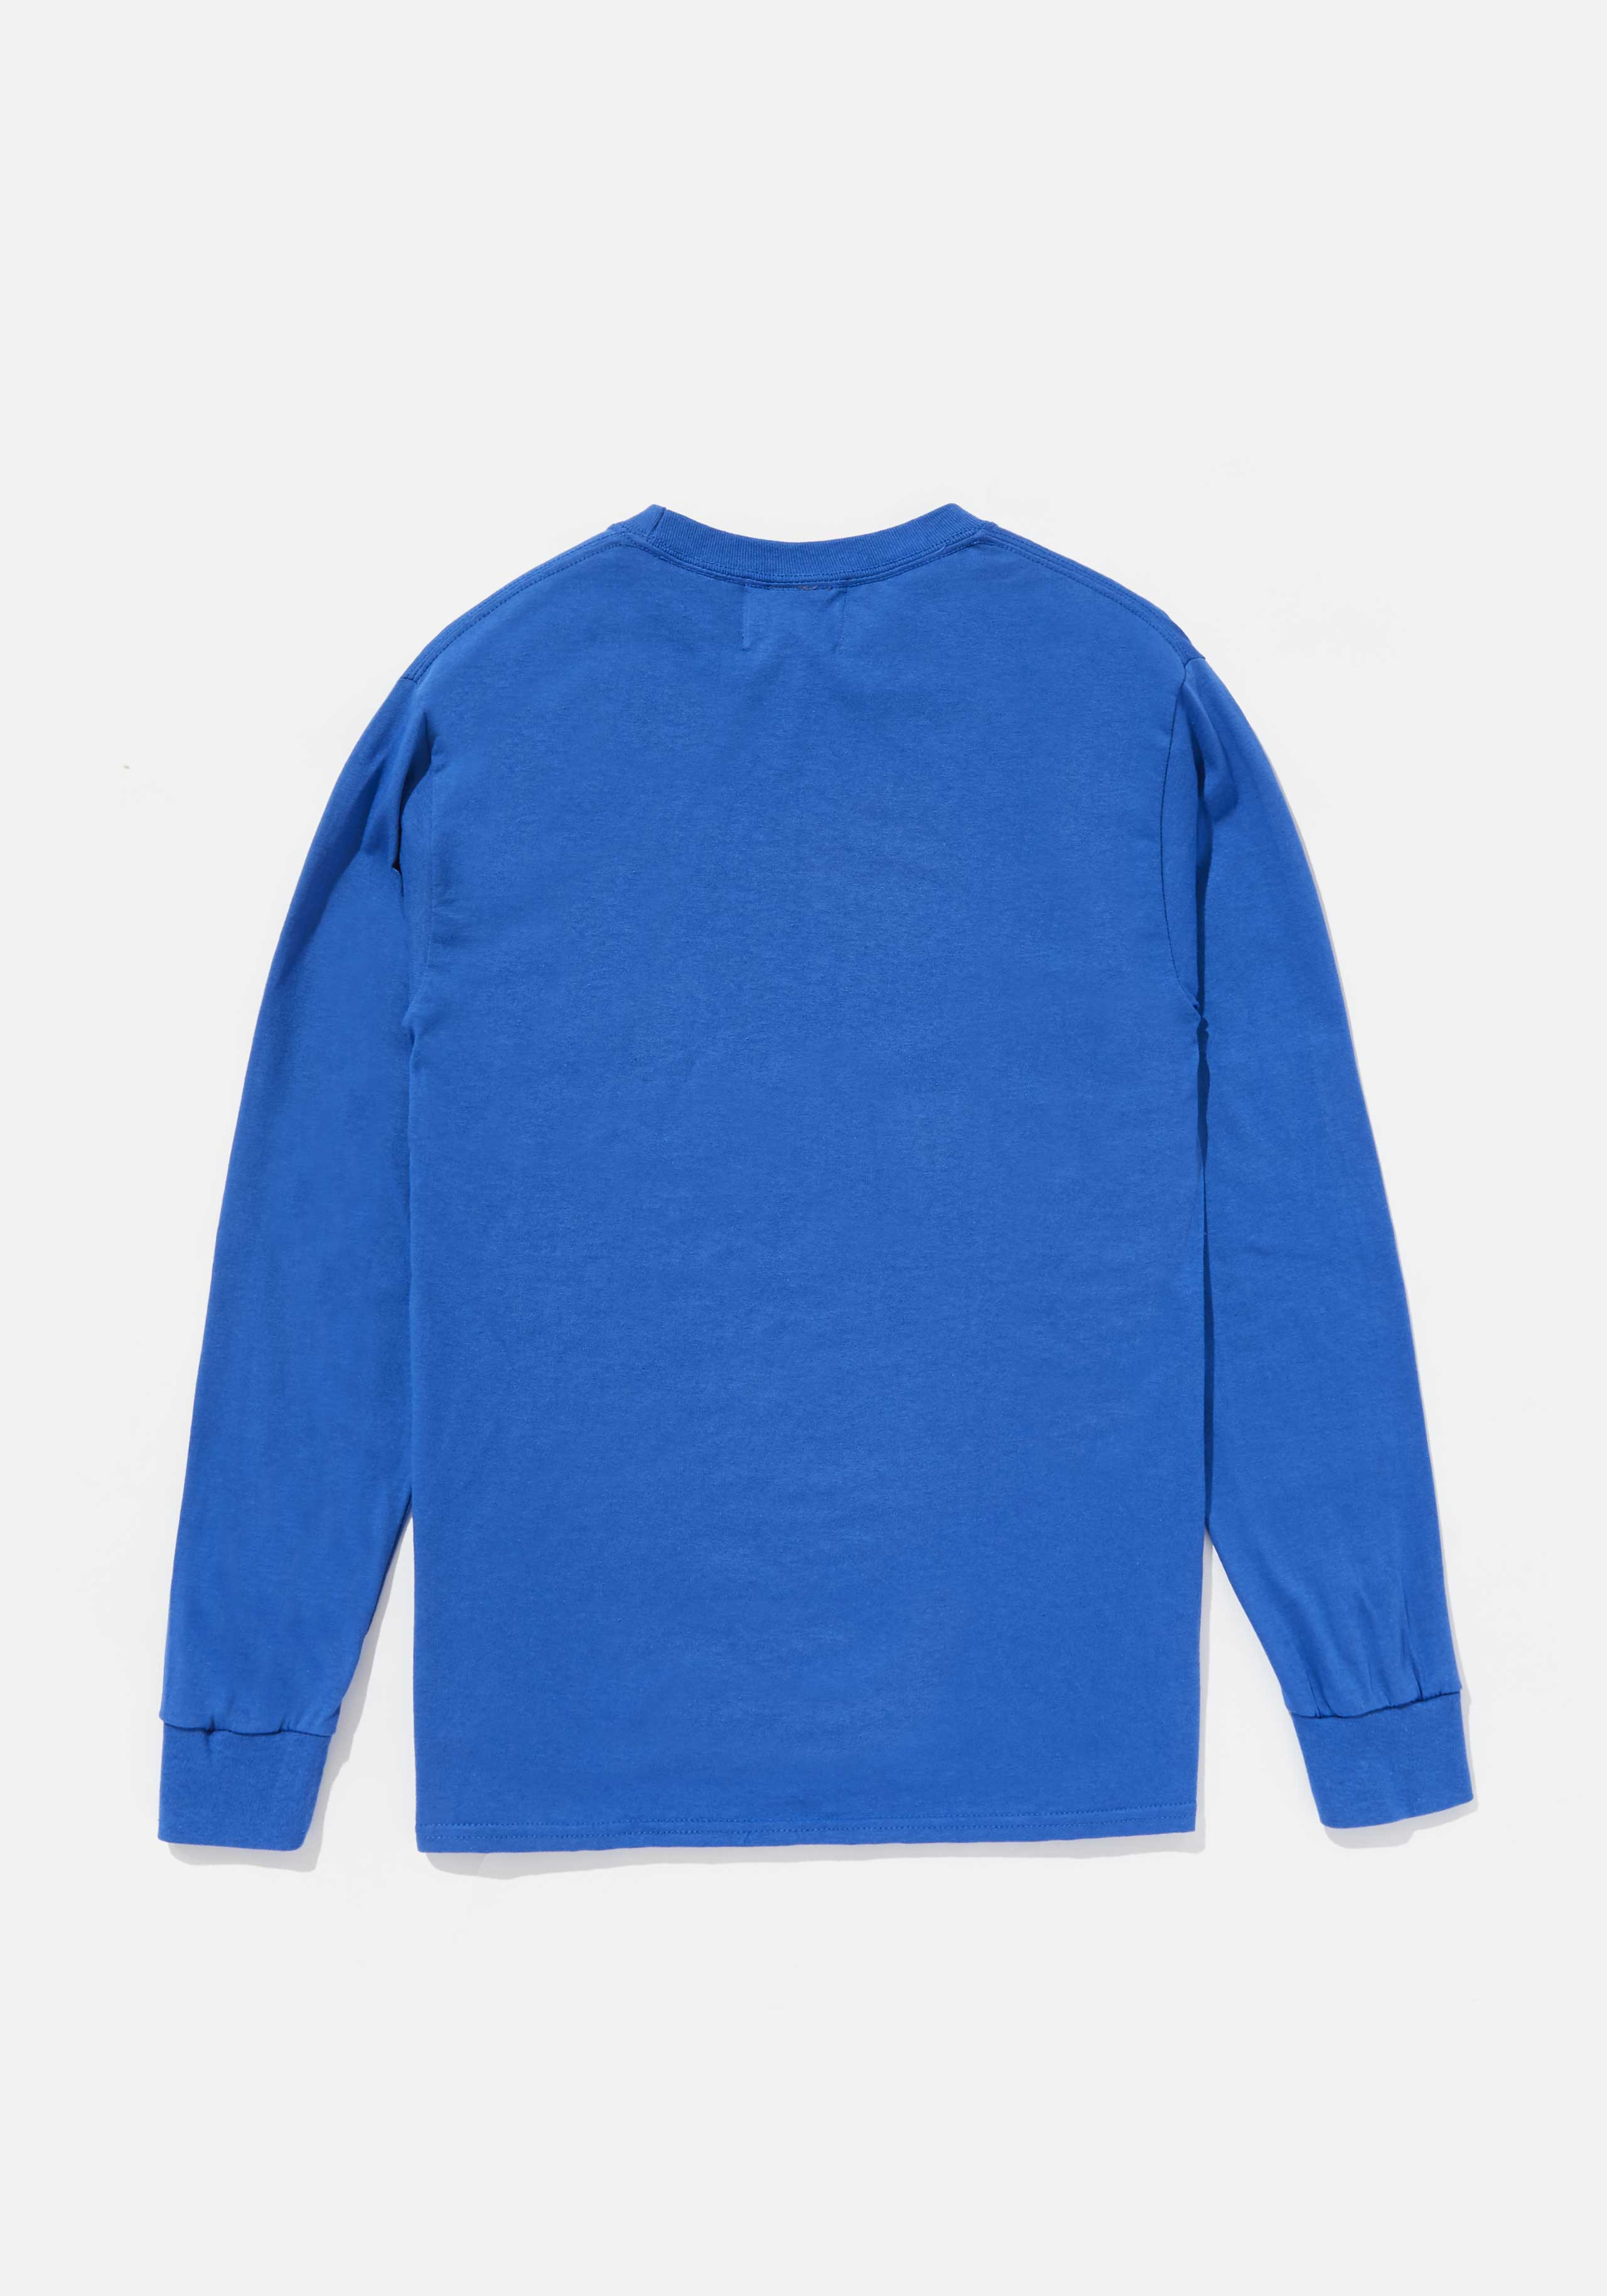 MKI CHEST EMB. LONG SLEEVE 2